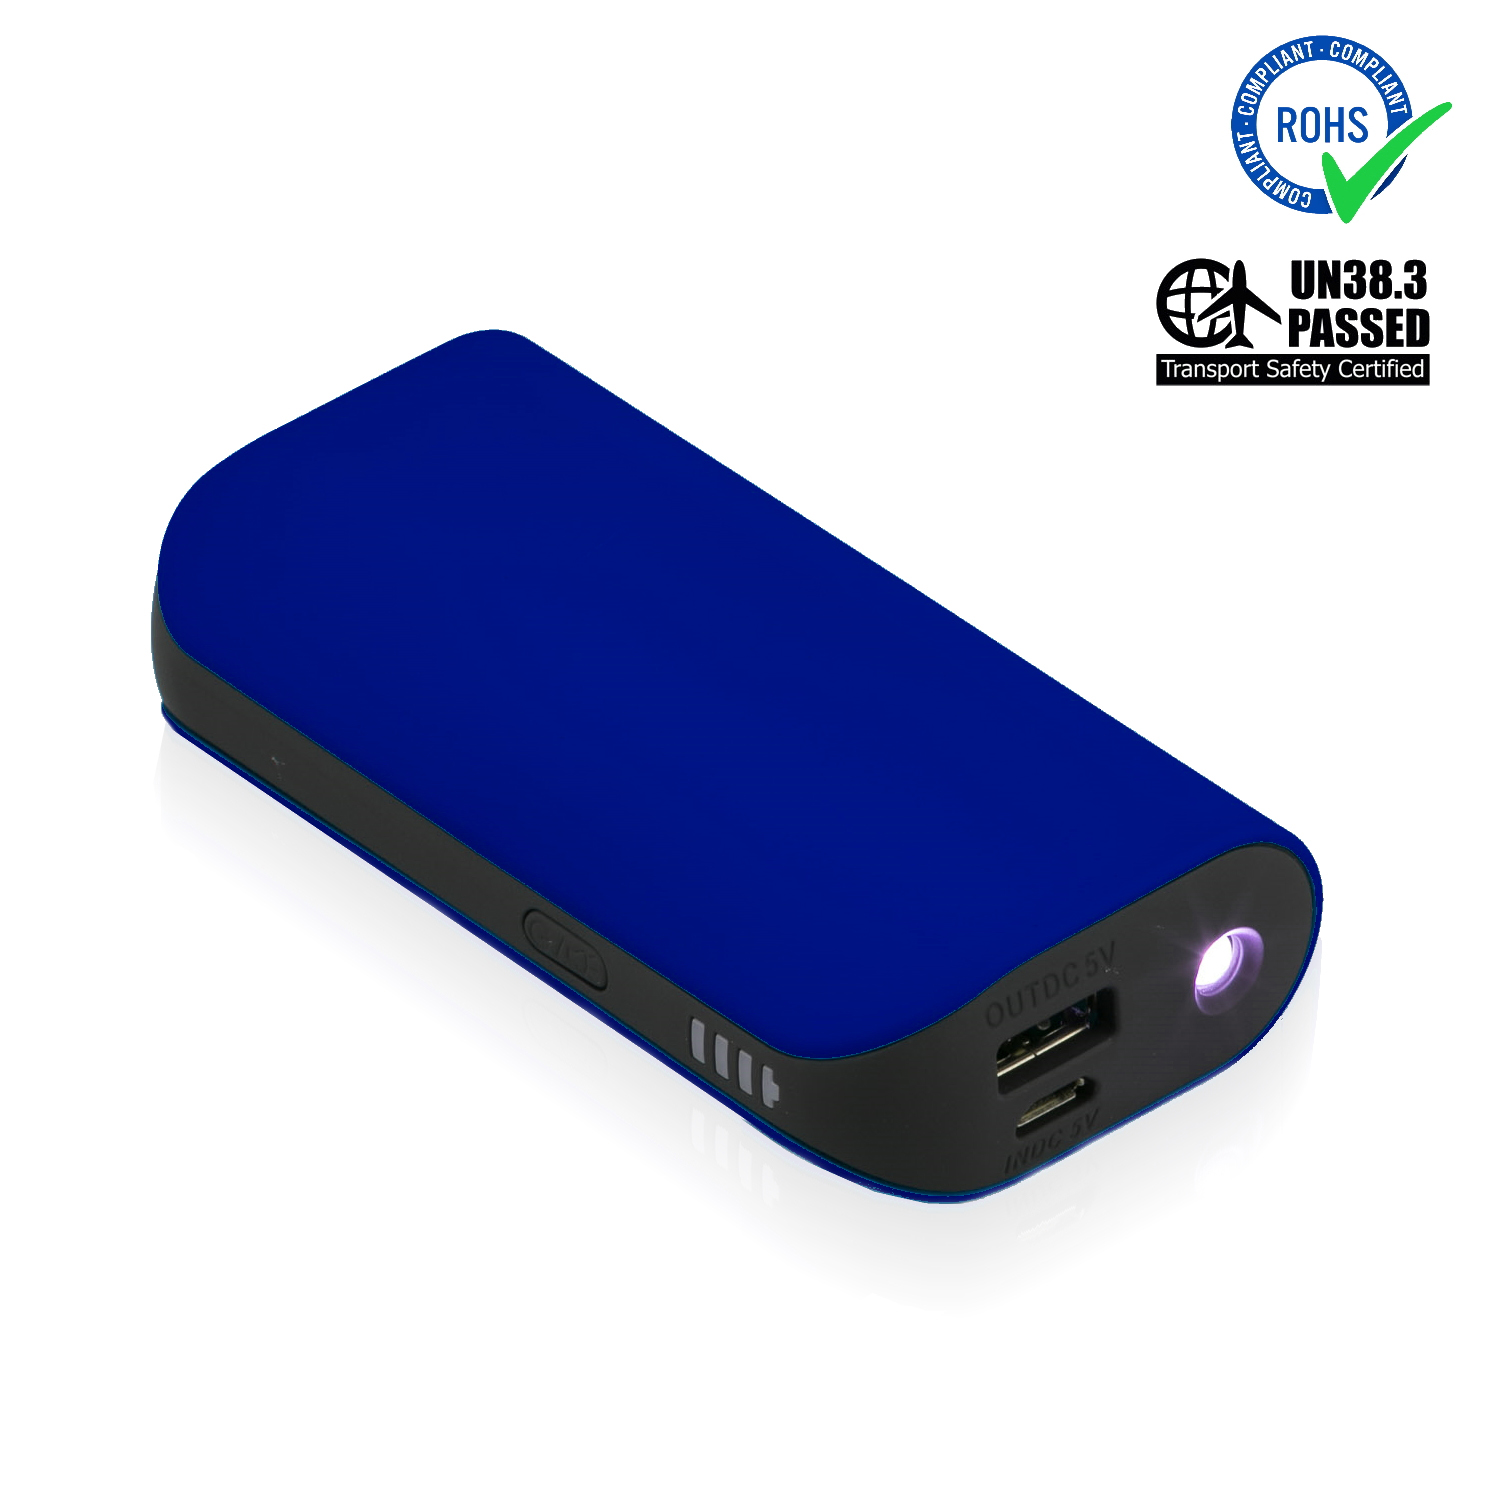 Reflex Blue Power Bank 5200 mAh + LED Torch